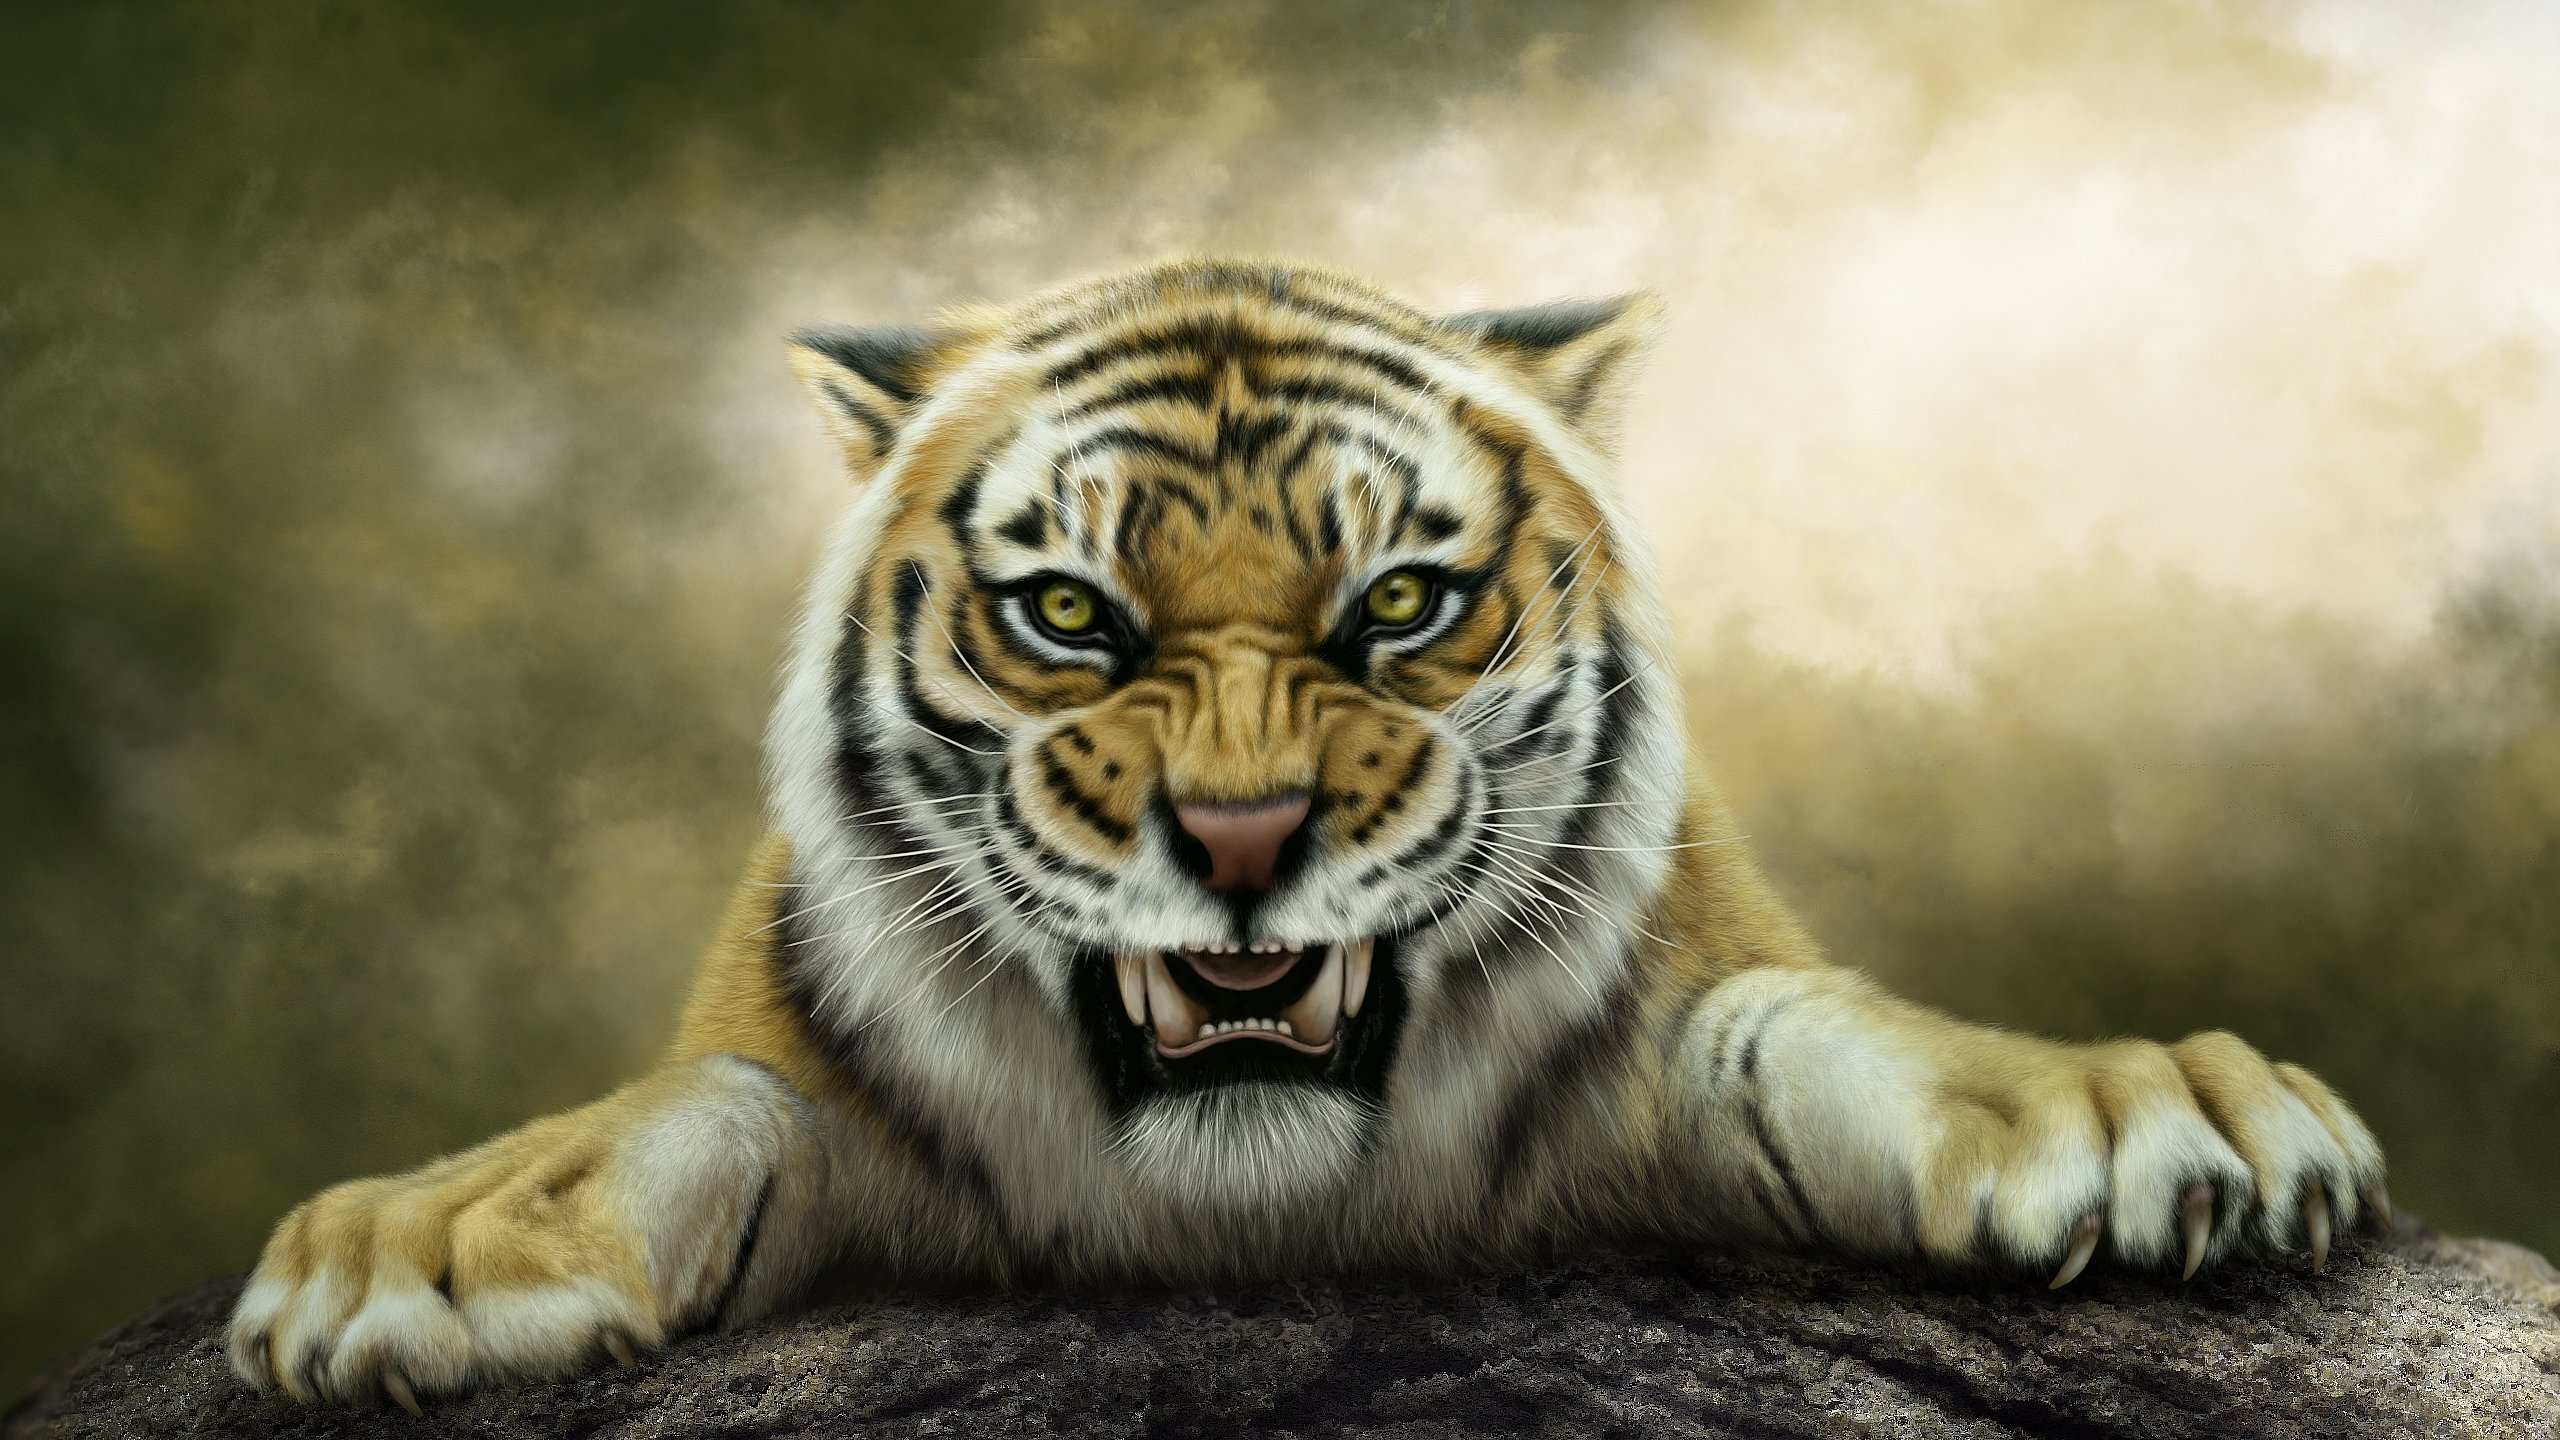 Free Tiger high quality wallpaper ID:115932 for hd 2560x1440 desktop